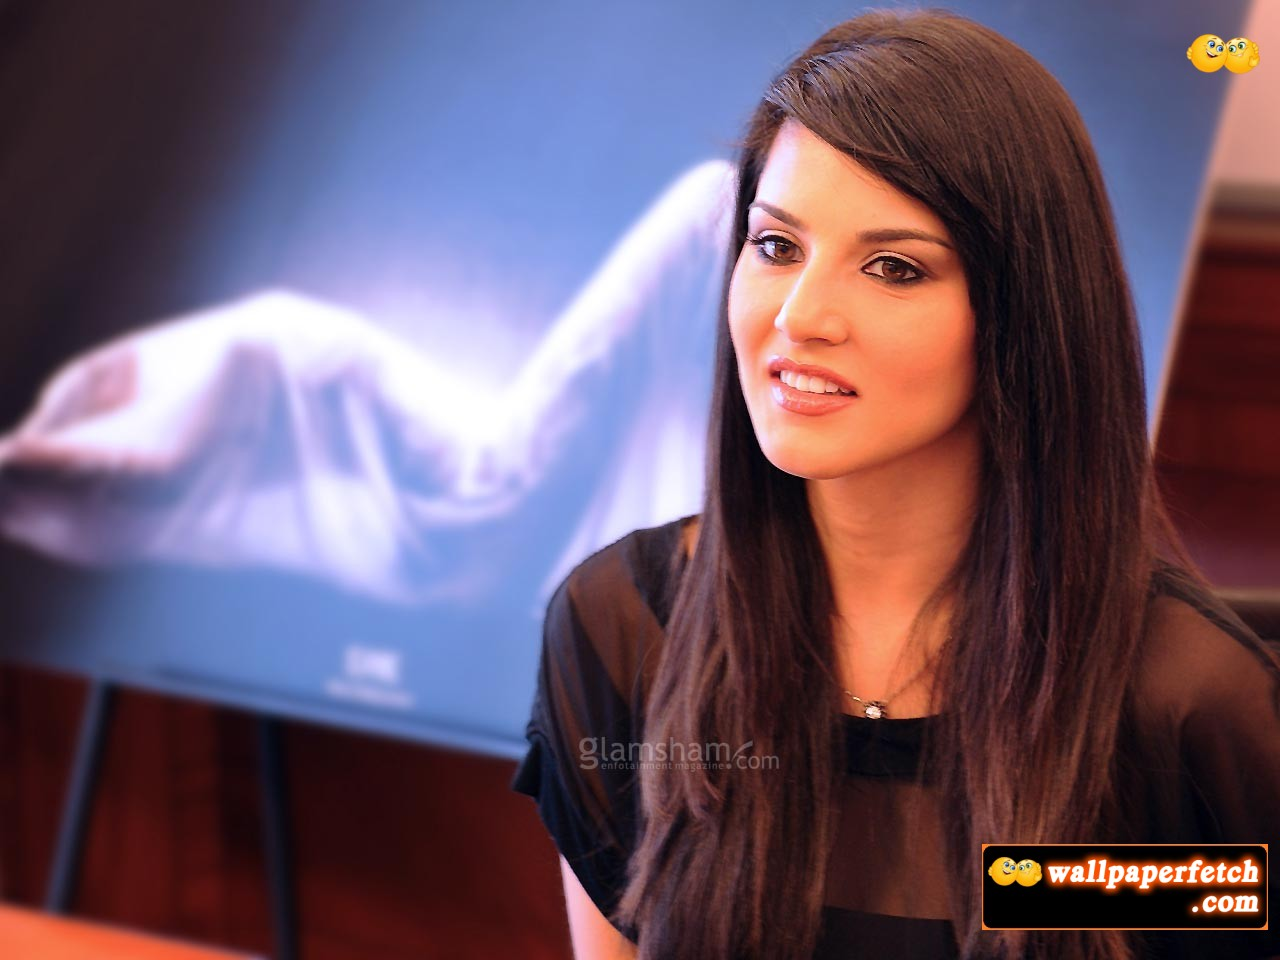 Wallpaper Fetch Sunny Leone Hot Wallpapers 2012-6046